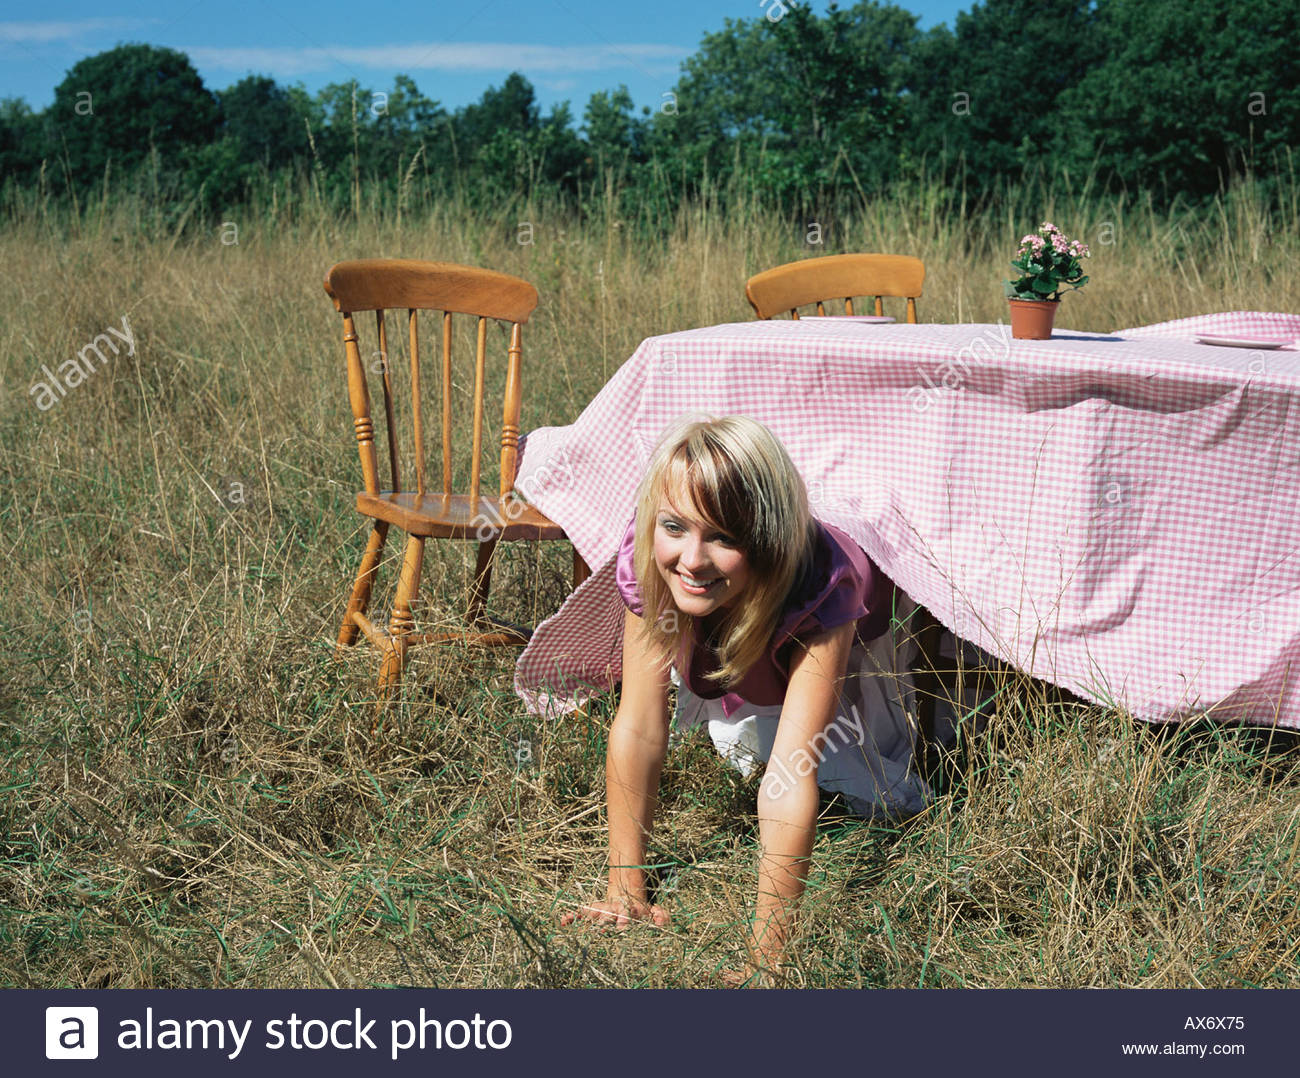 Young woman emerging from under a table - Stock Image